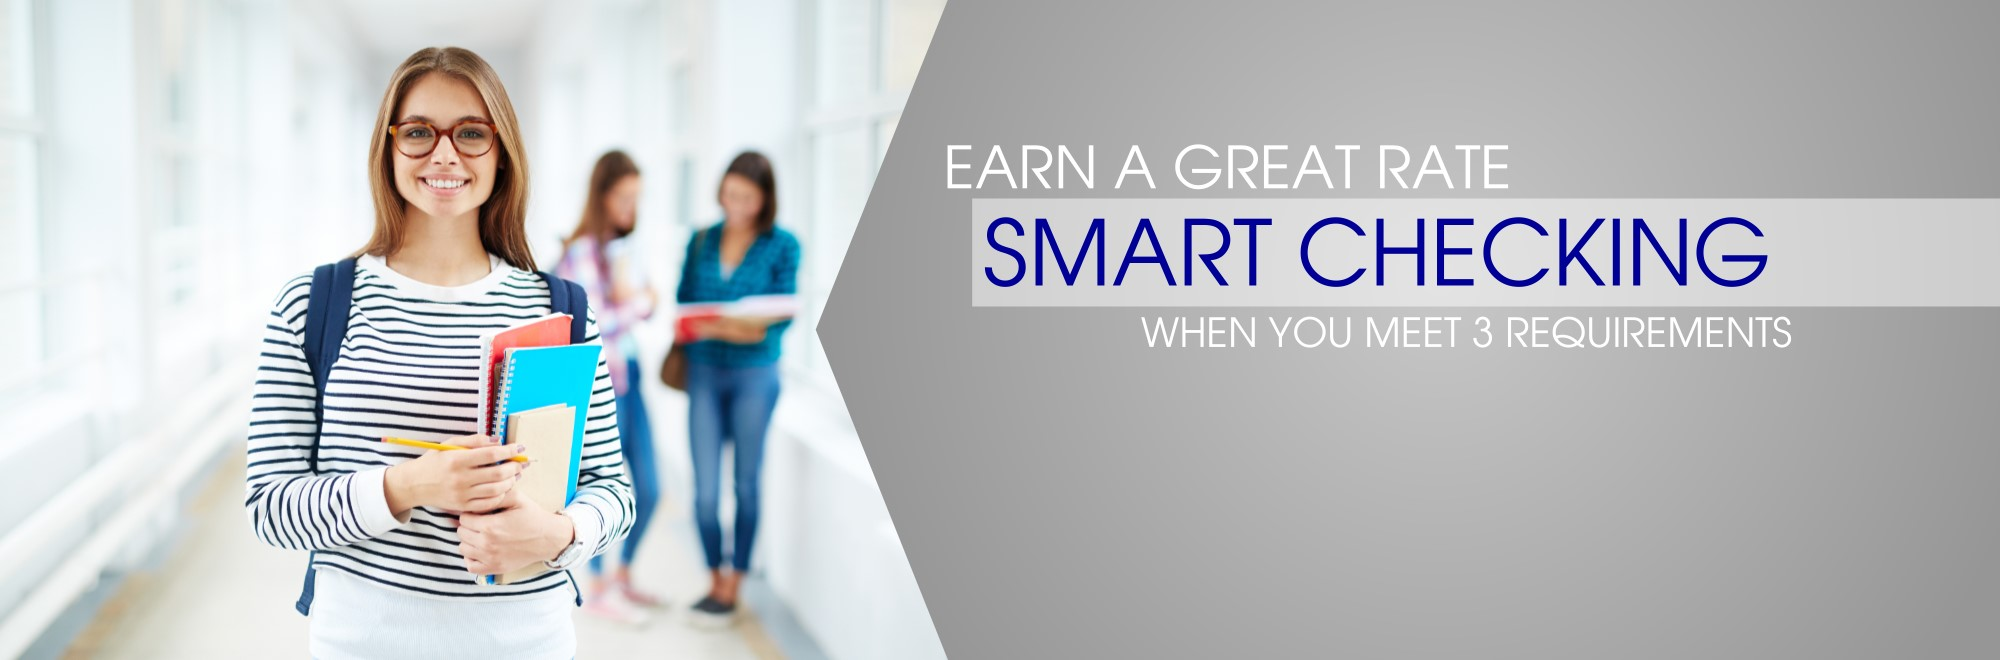 smart checking earn a great rate